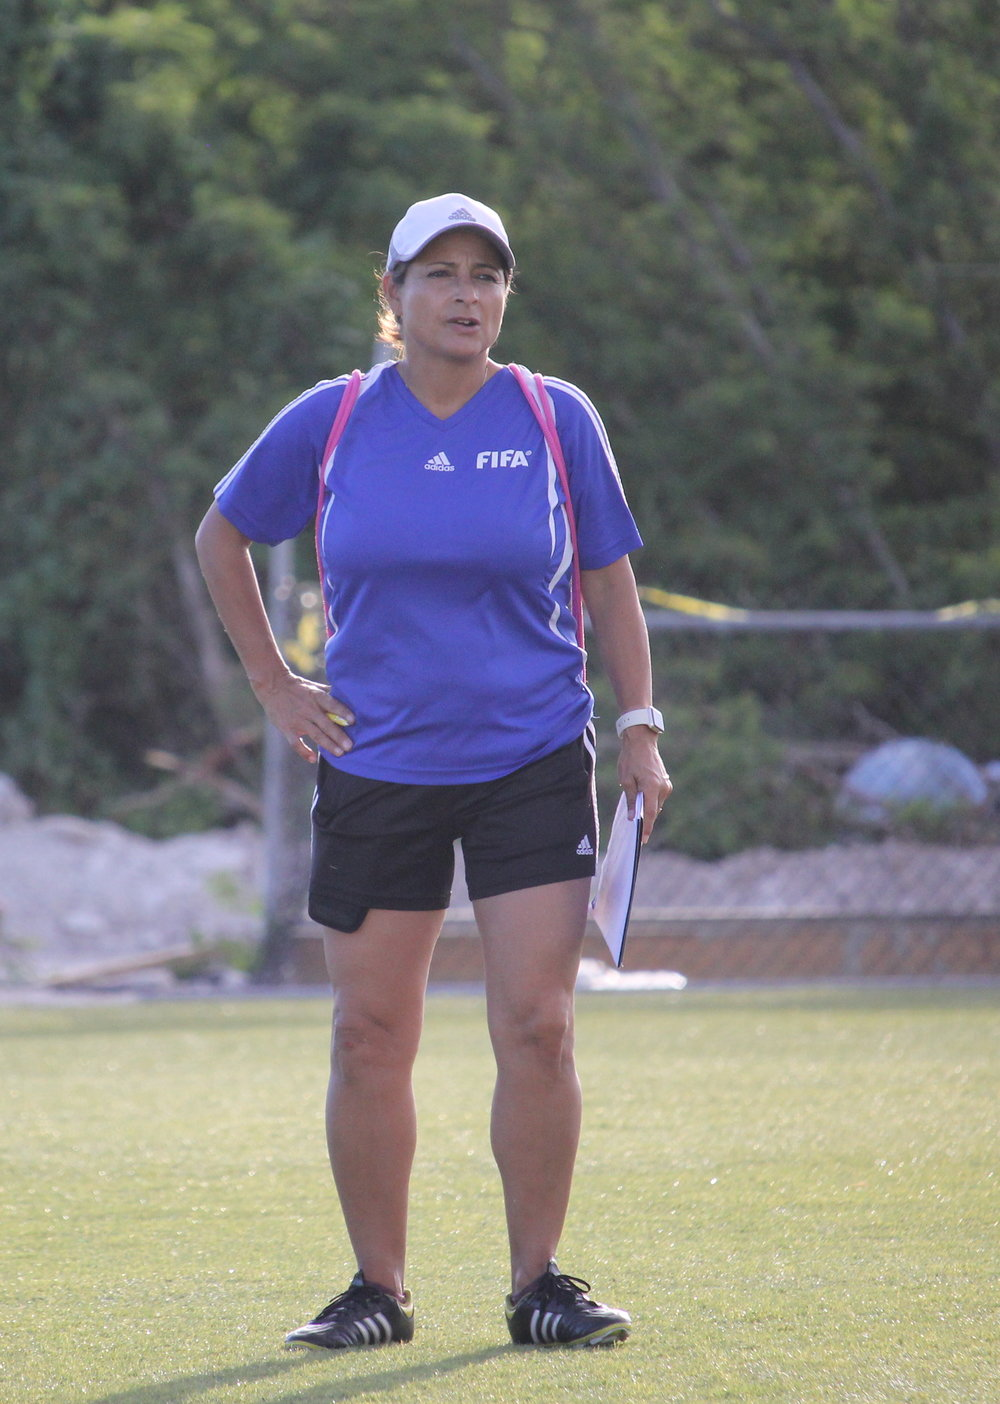 FIFA Instructor, Andrea Rodebaugh